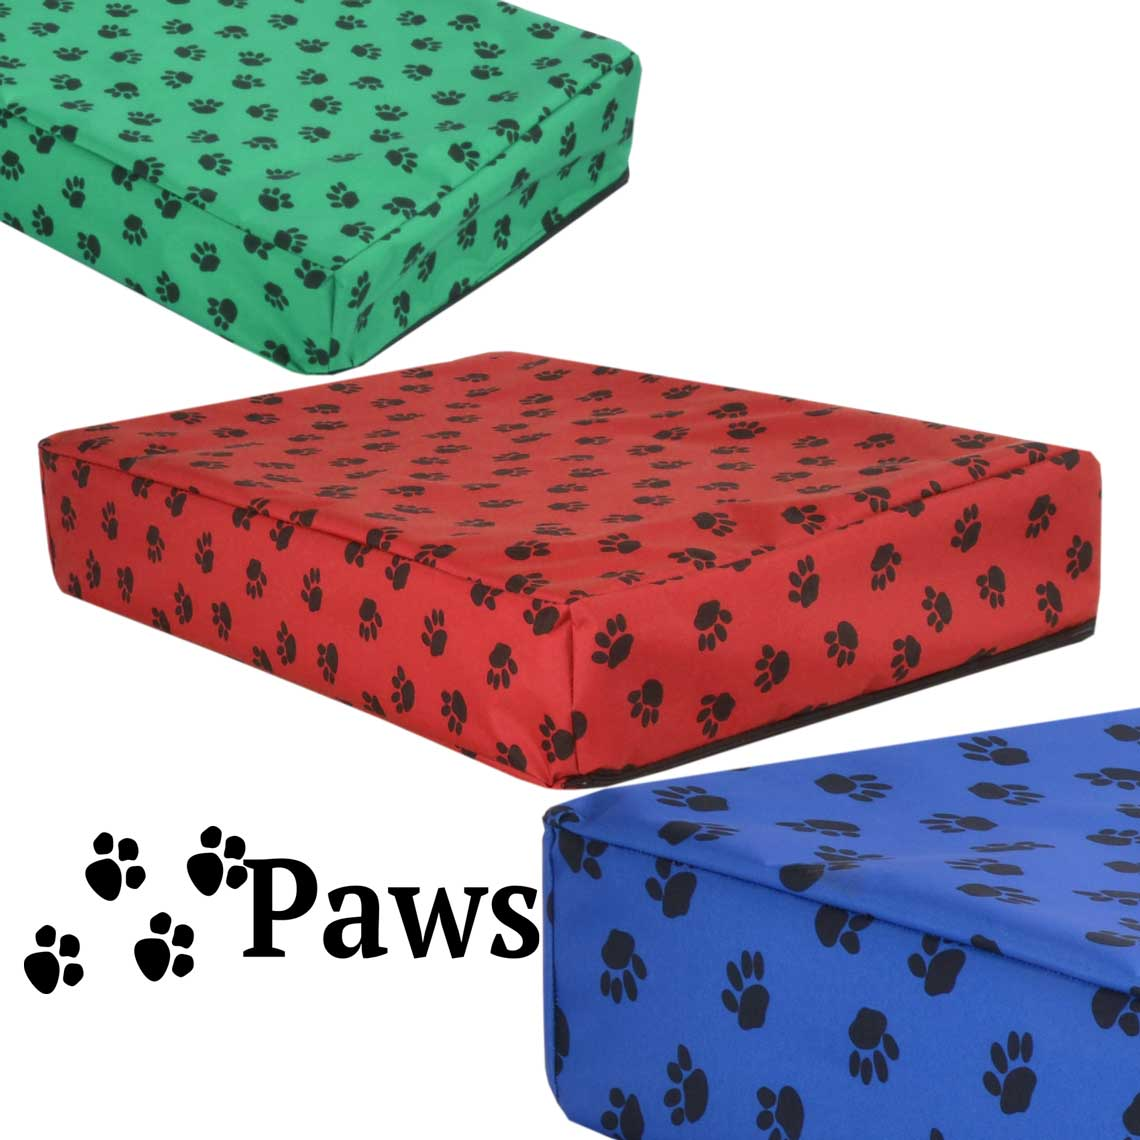 paws waterproof orthopedic memory foam dog cube bed. Black Bedroom Furniture Sets. Home Design Ideas